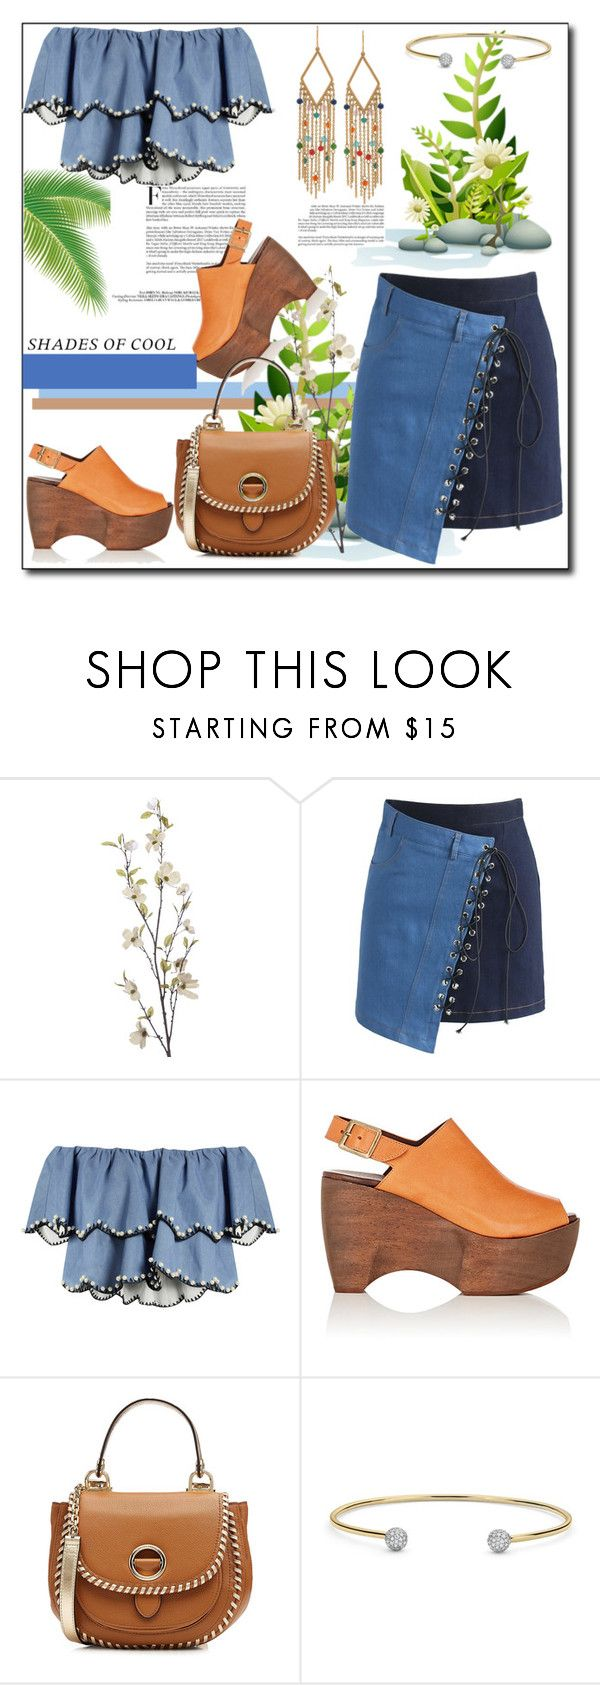 """""""Shades of Cool this Holiday Weekend"""" by helenaymangual ❤ liked on Polyvore featuring Pier 1 Imports, Chicwish, HUISHAN ZHANG, Simon Miller, MICHAEL Michael Kors and Ralph Lauren"""